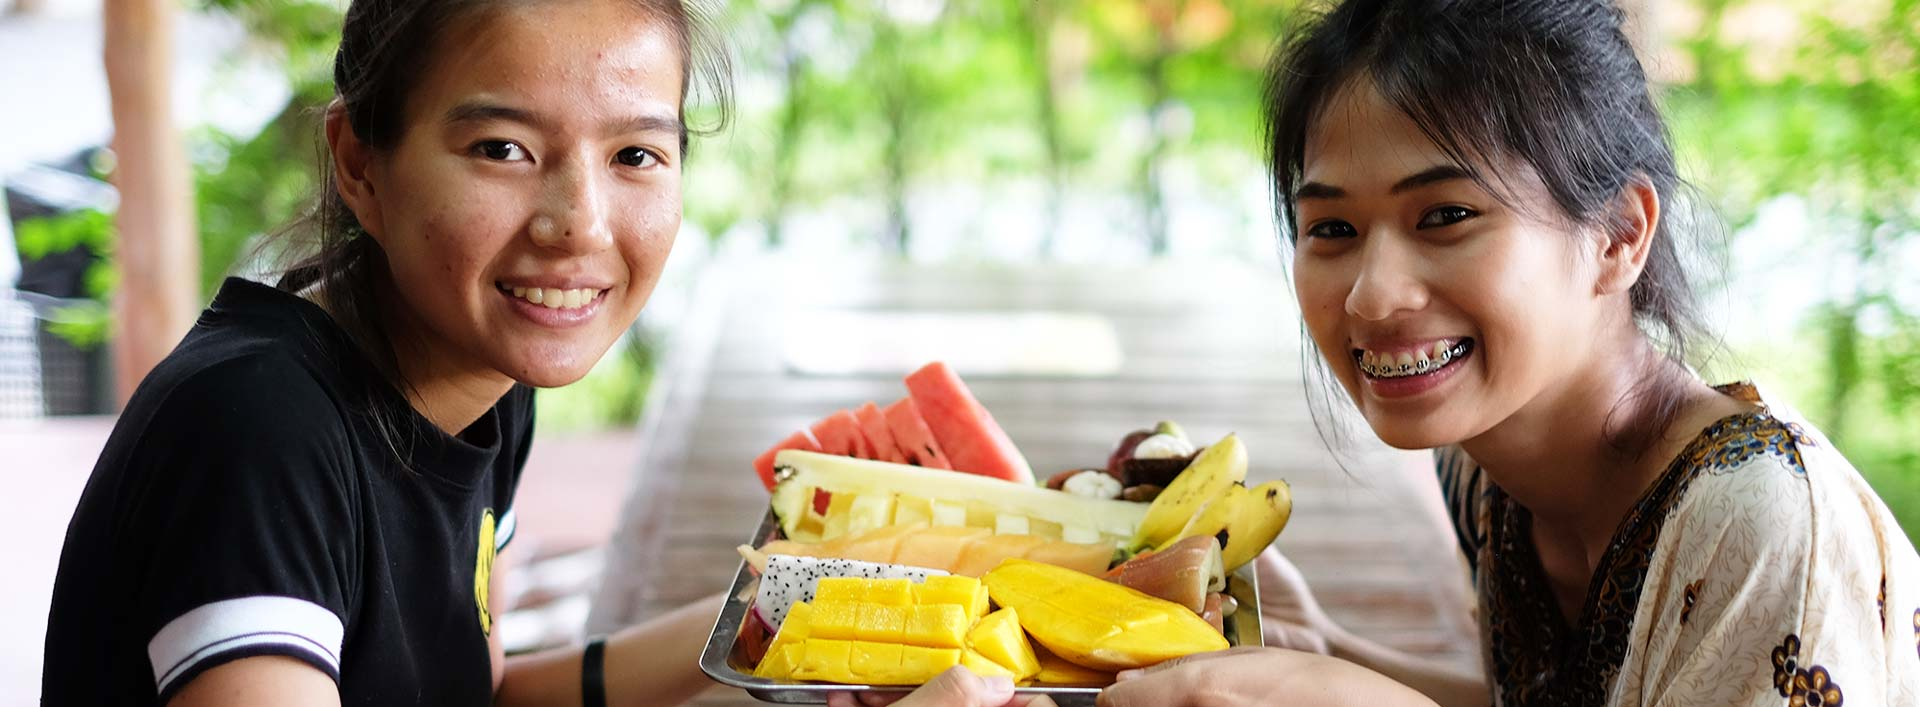 Pattaya_ElephantTrekking_Thai-Fruit-1